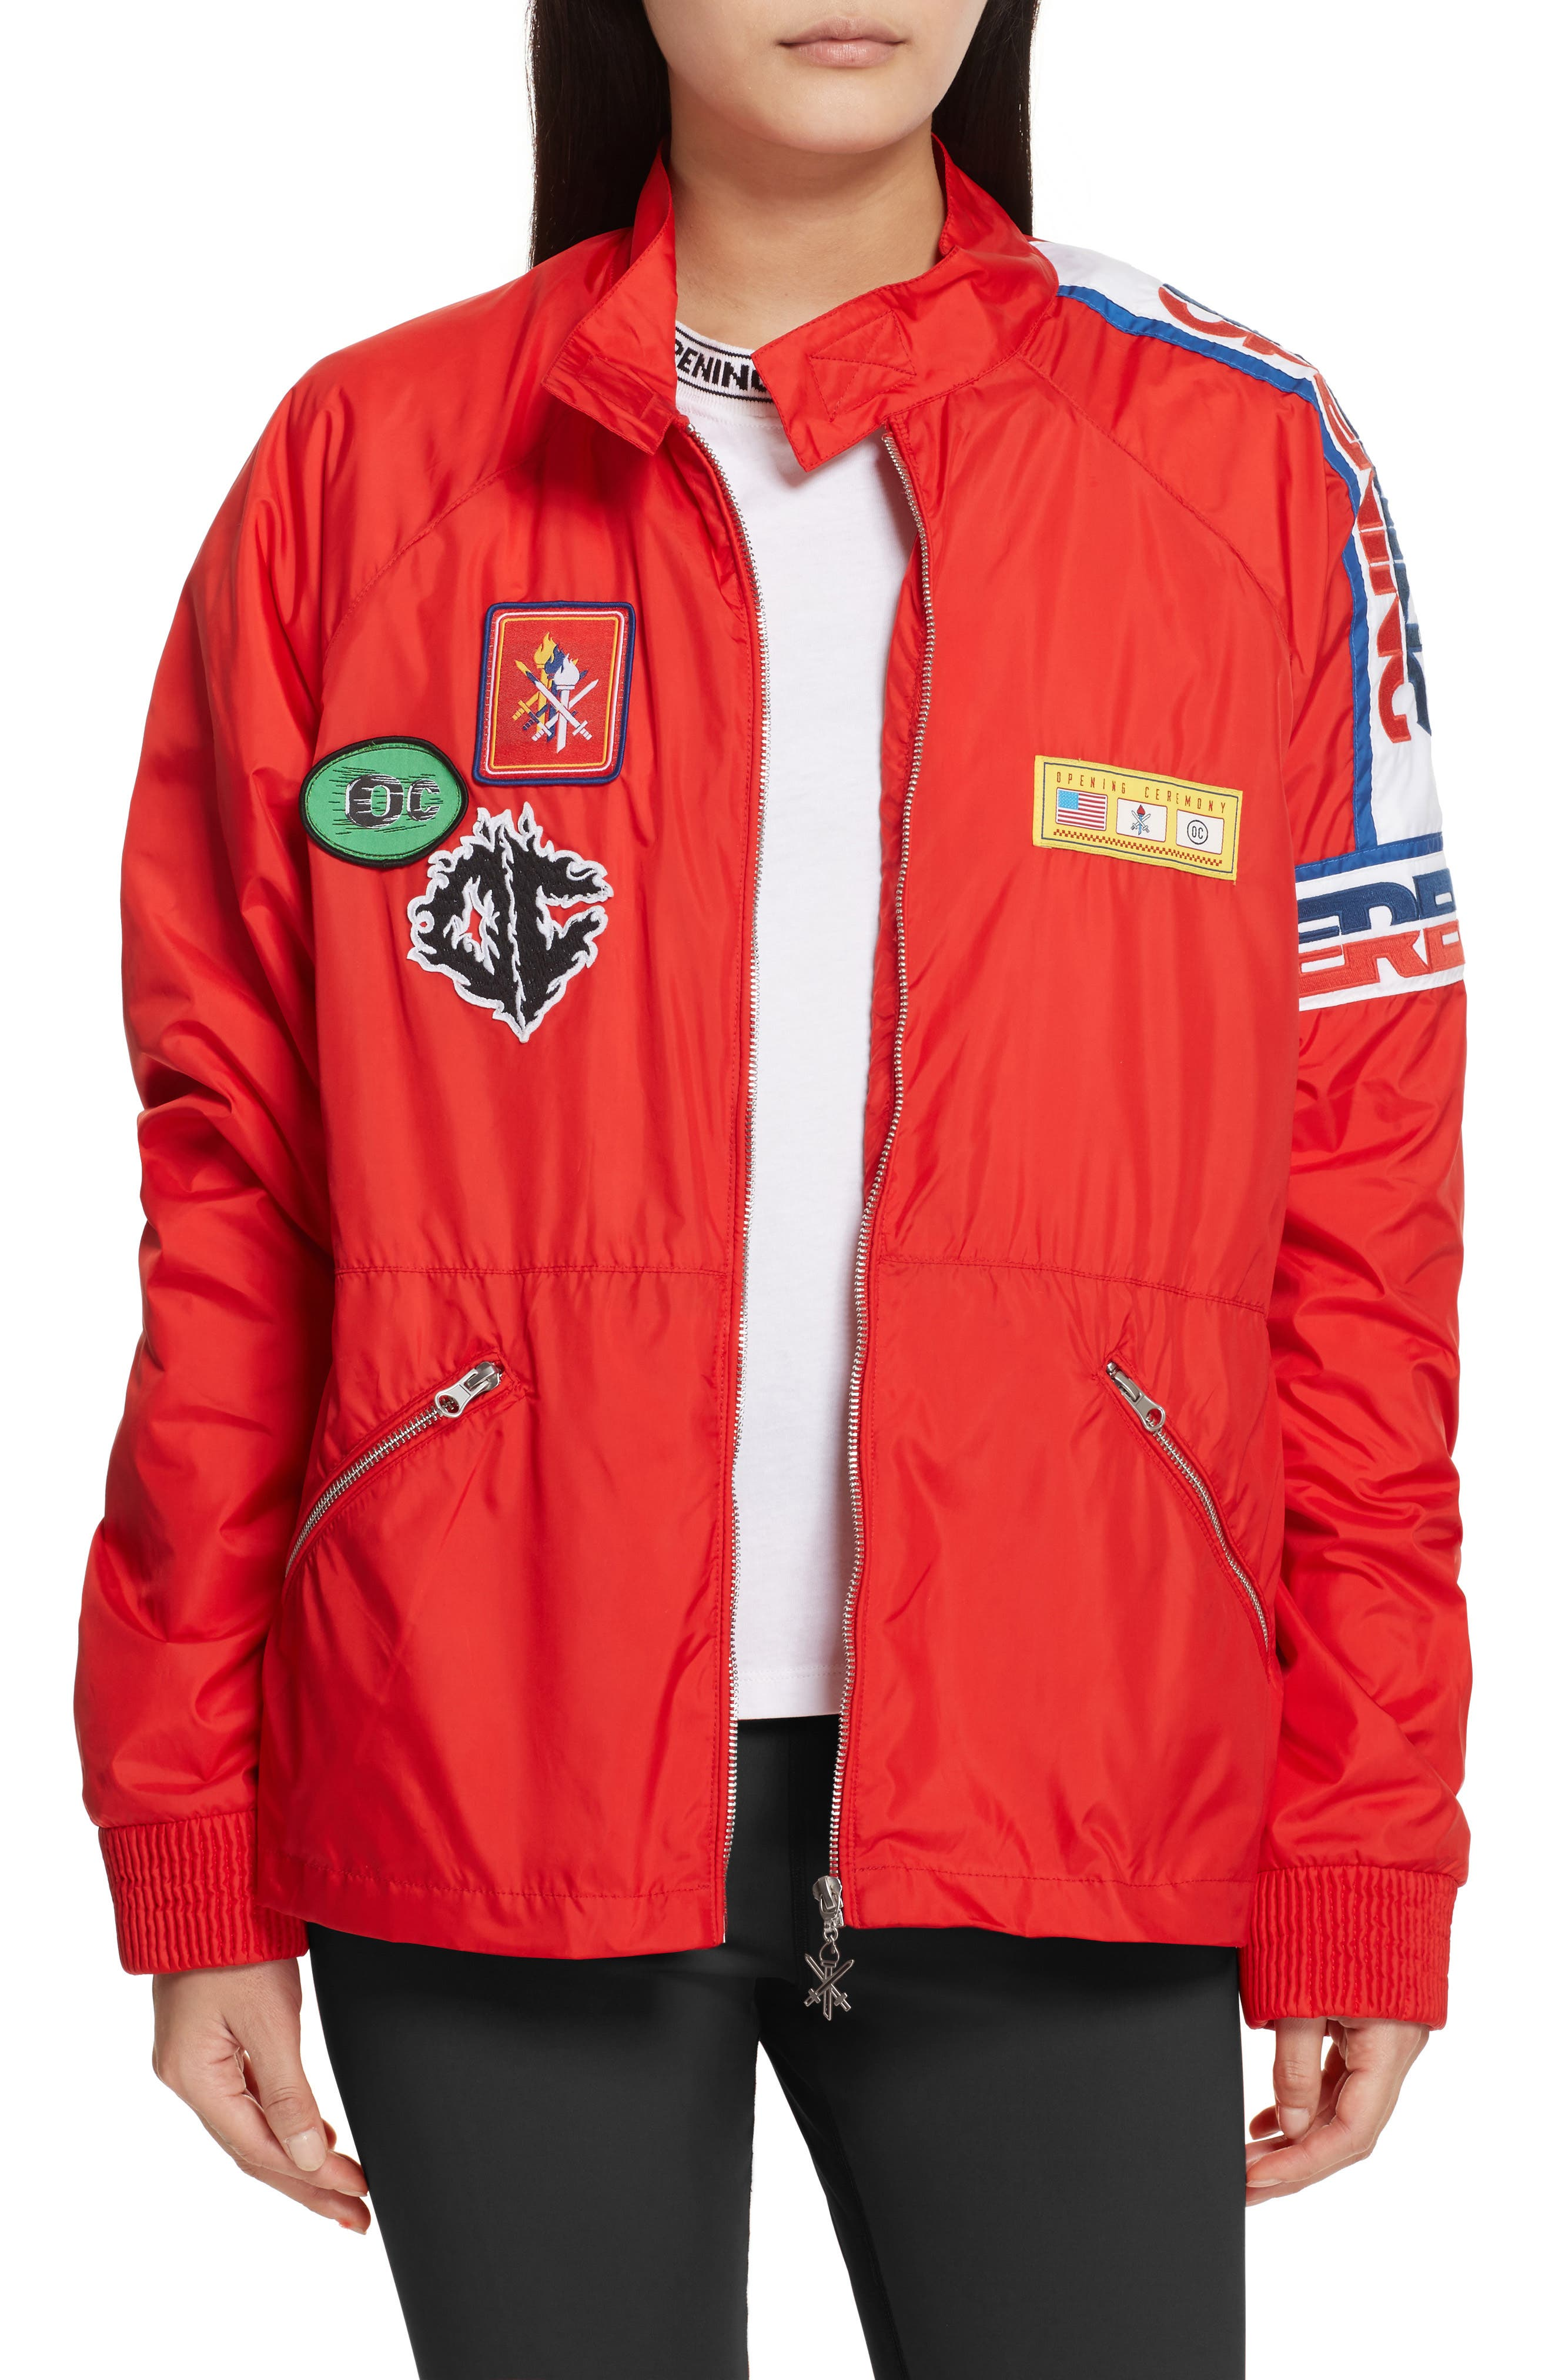 Opening Ceremony 3-in-1 Motocross Jacket (Limited Edition)